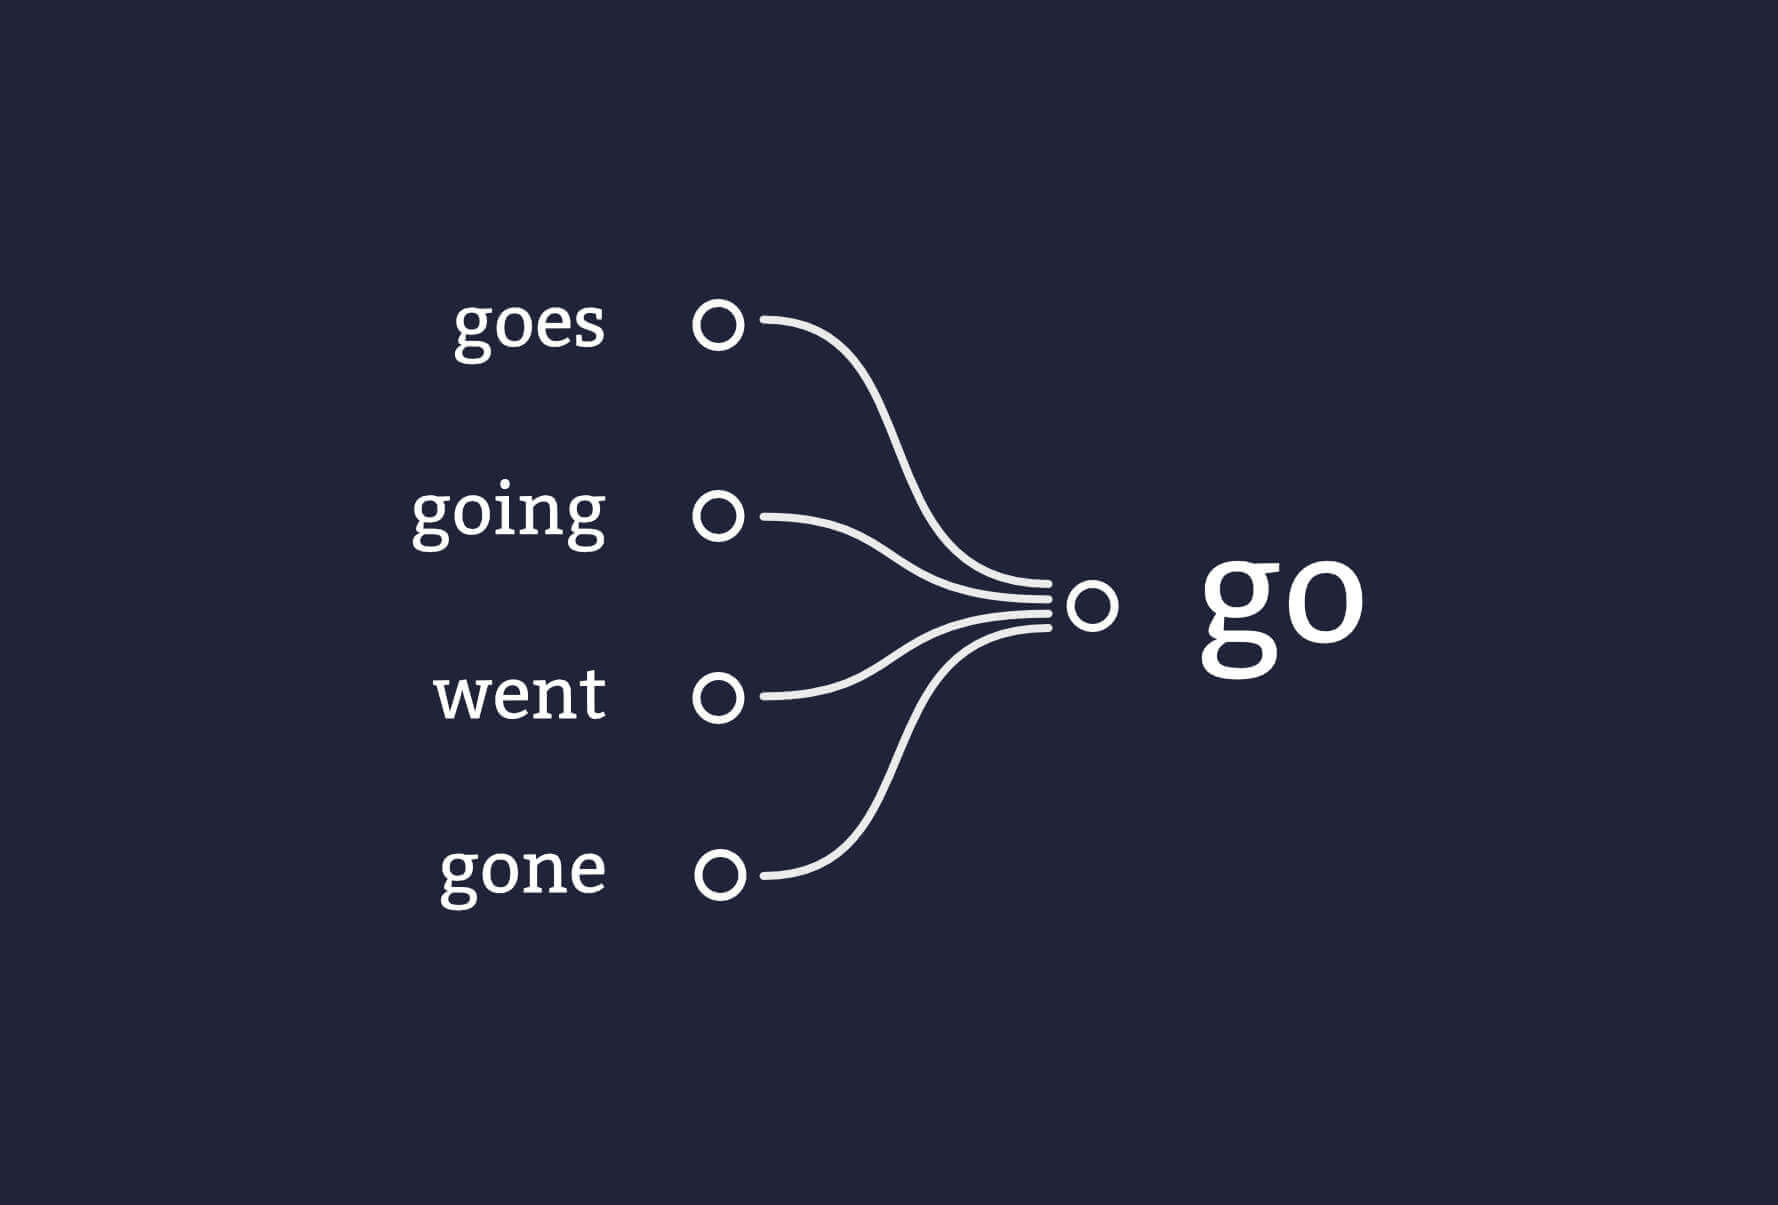 The lemma for goes going went and gone in go